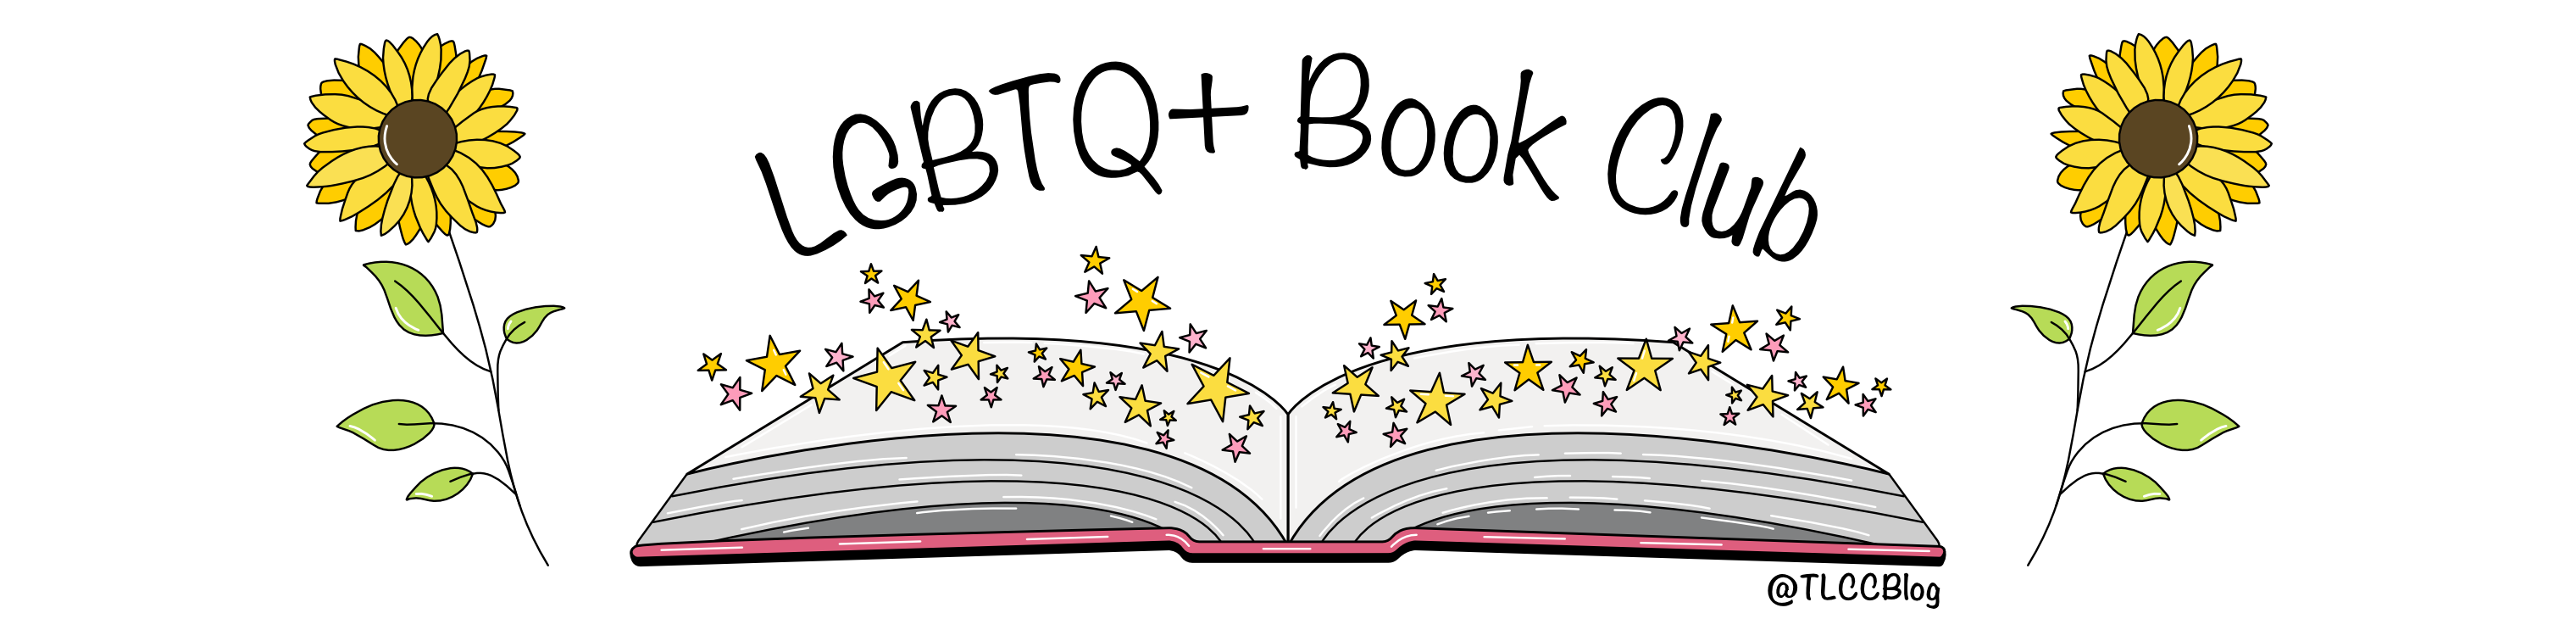 LGBTQ+ Book Club Header